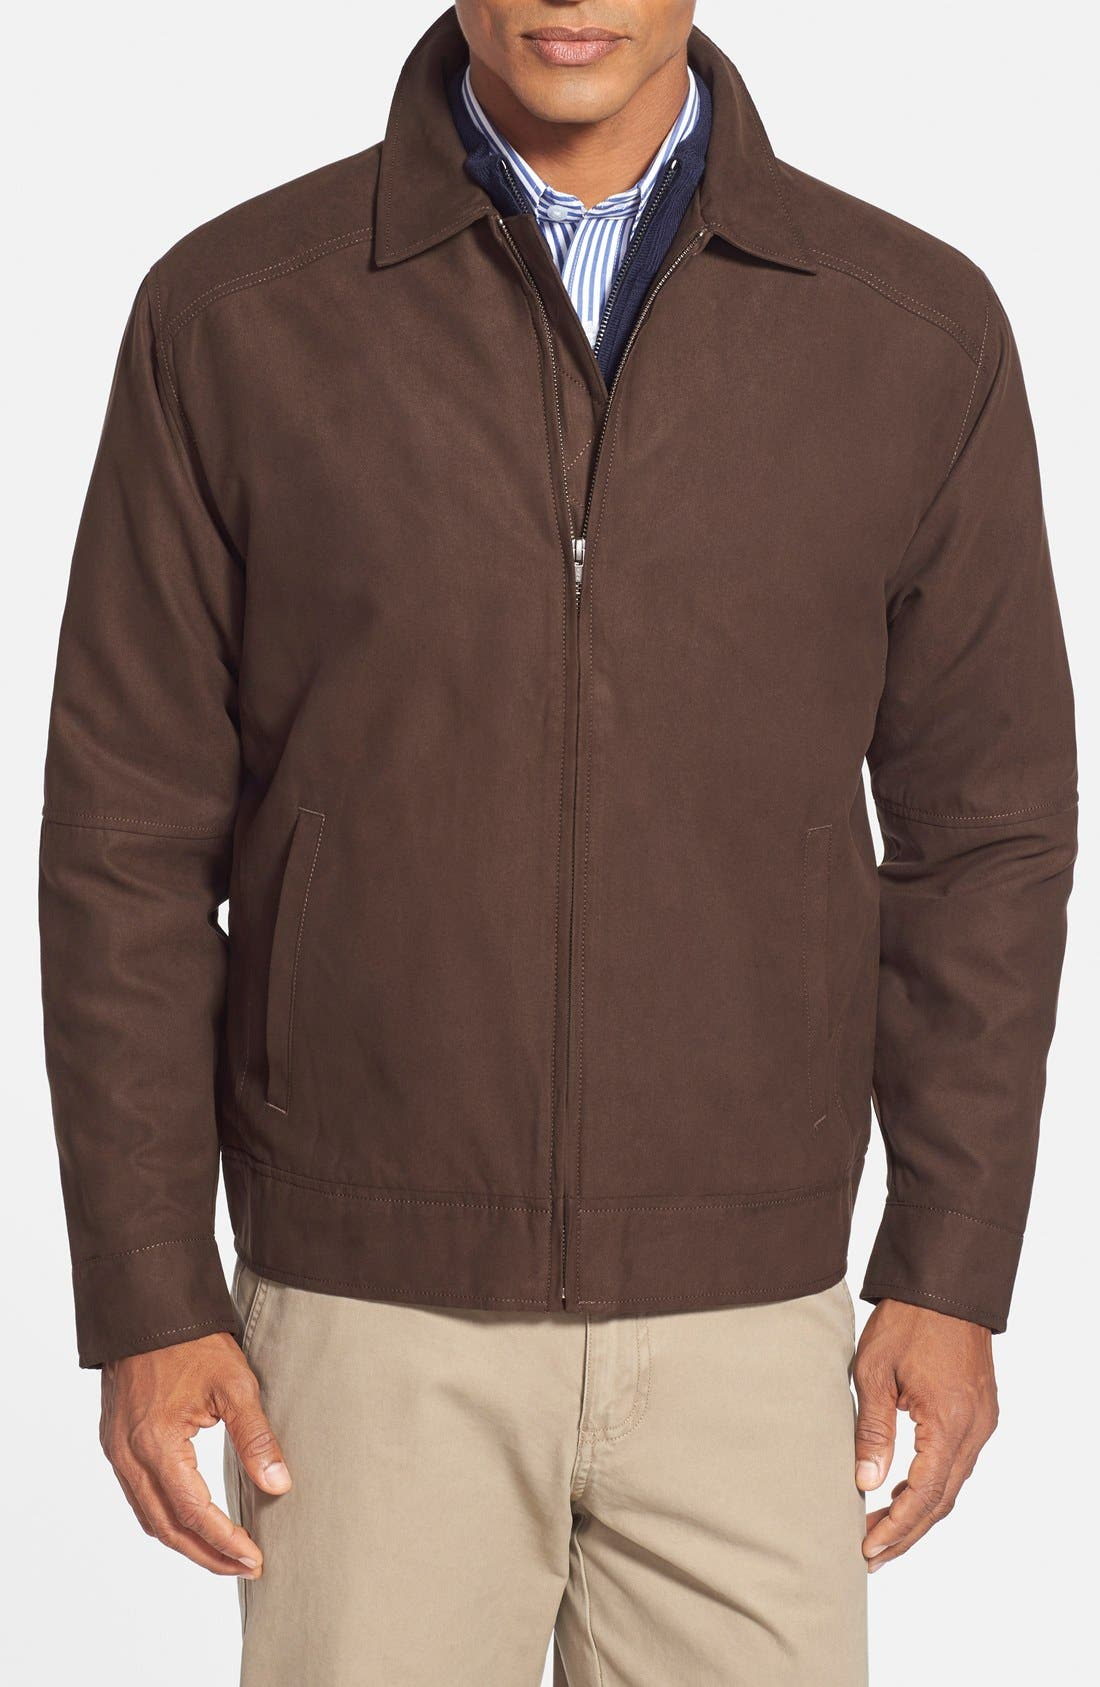 'Roosevelt' Classic Fit Water Resistant Full Zip Jacket,                         Main,                         color, Bittersweet Brown